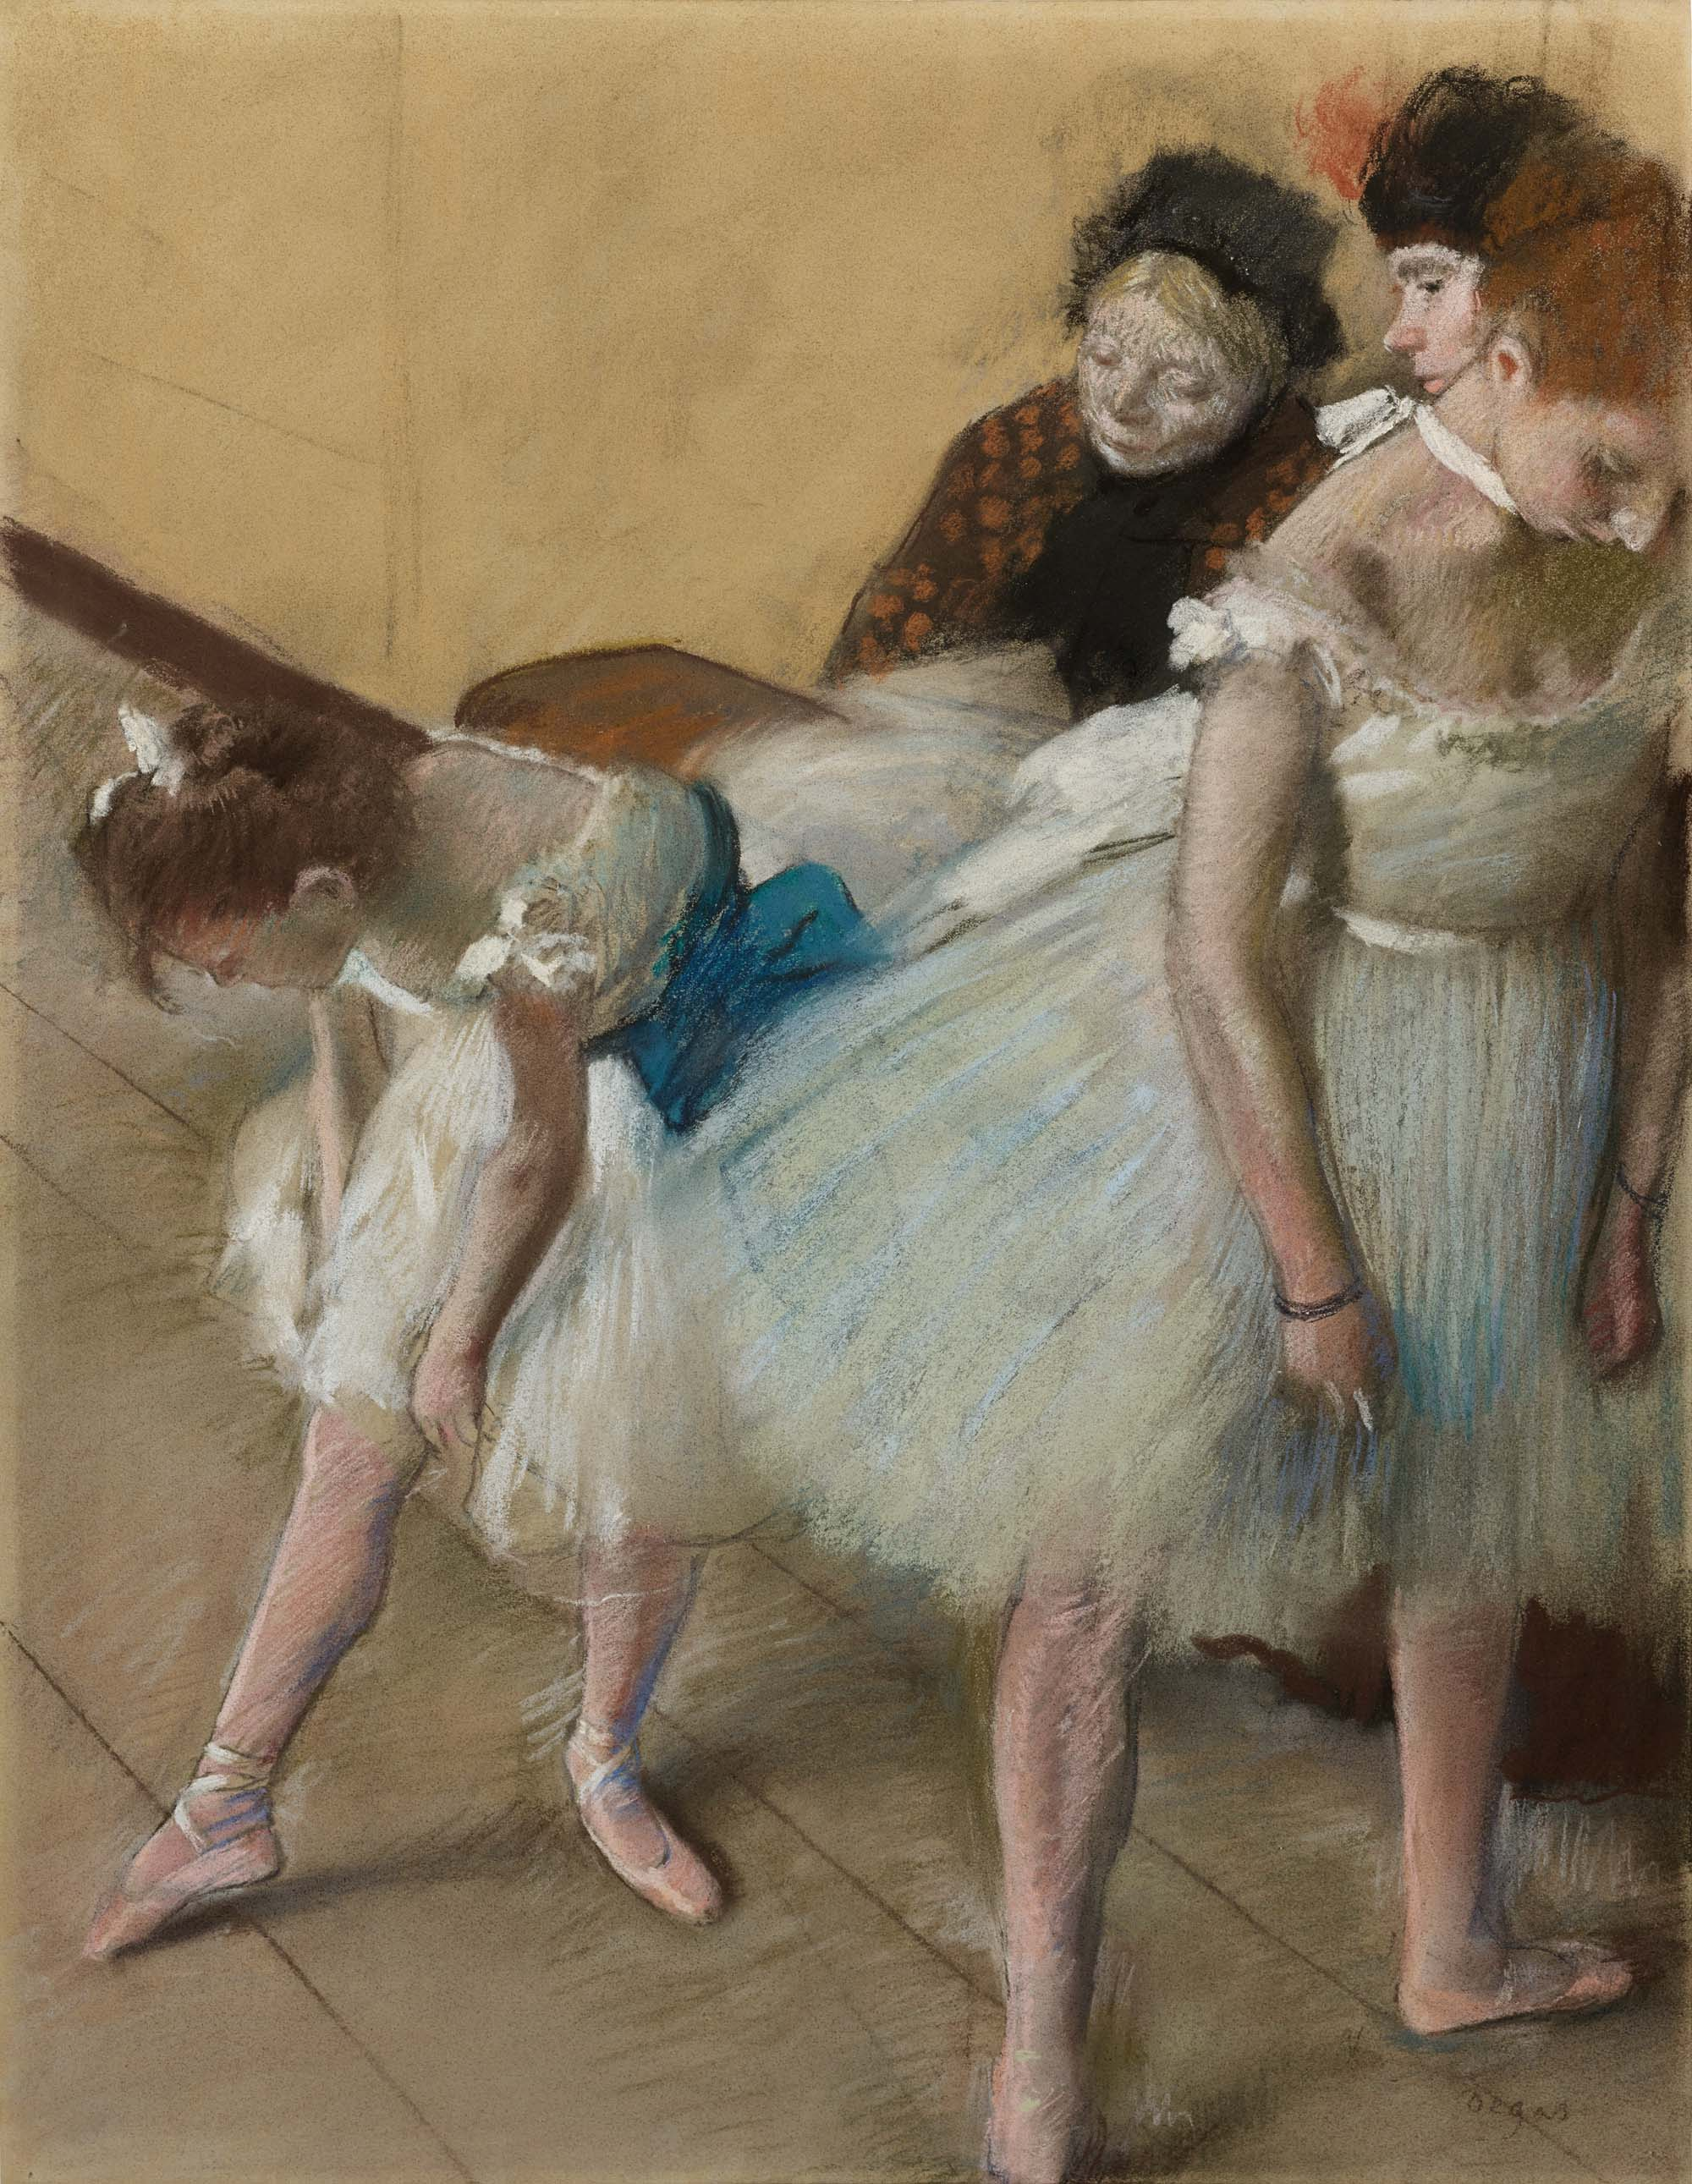 A Degas pastel showing young female dancers in tutus